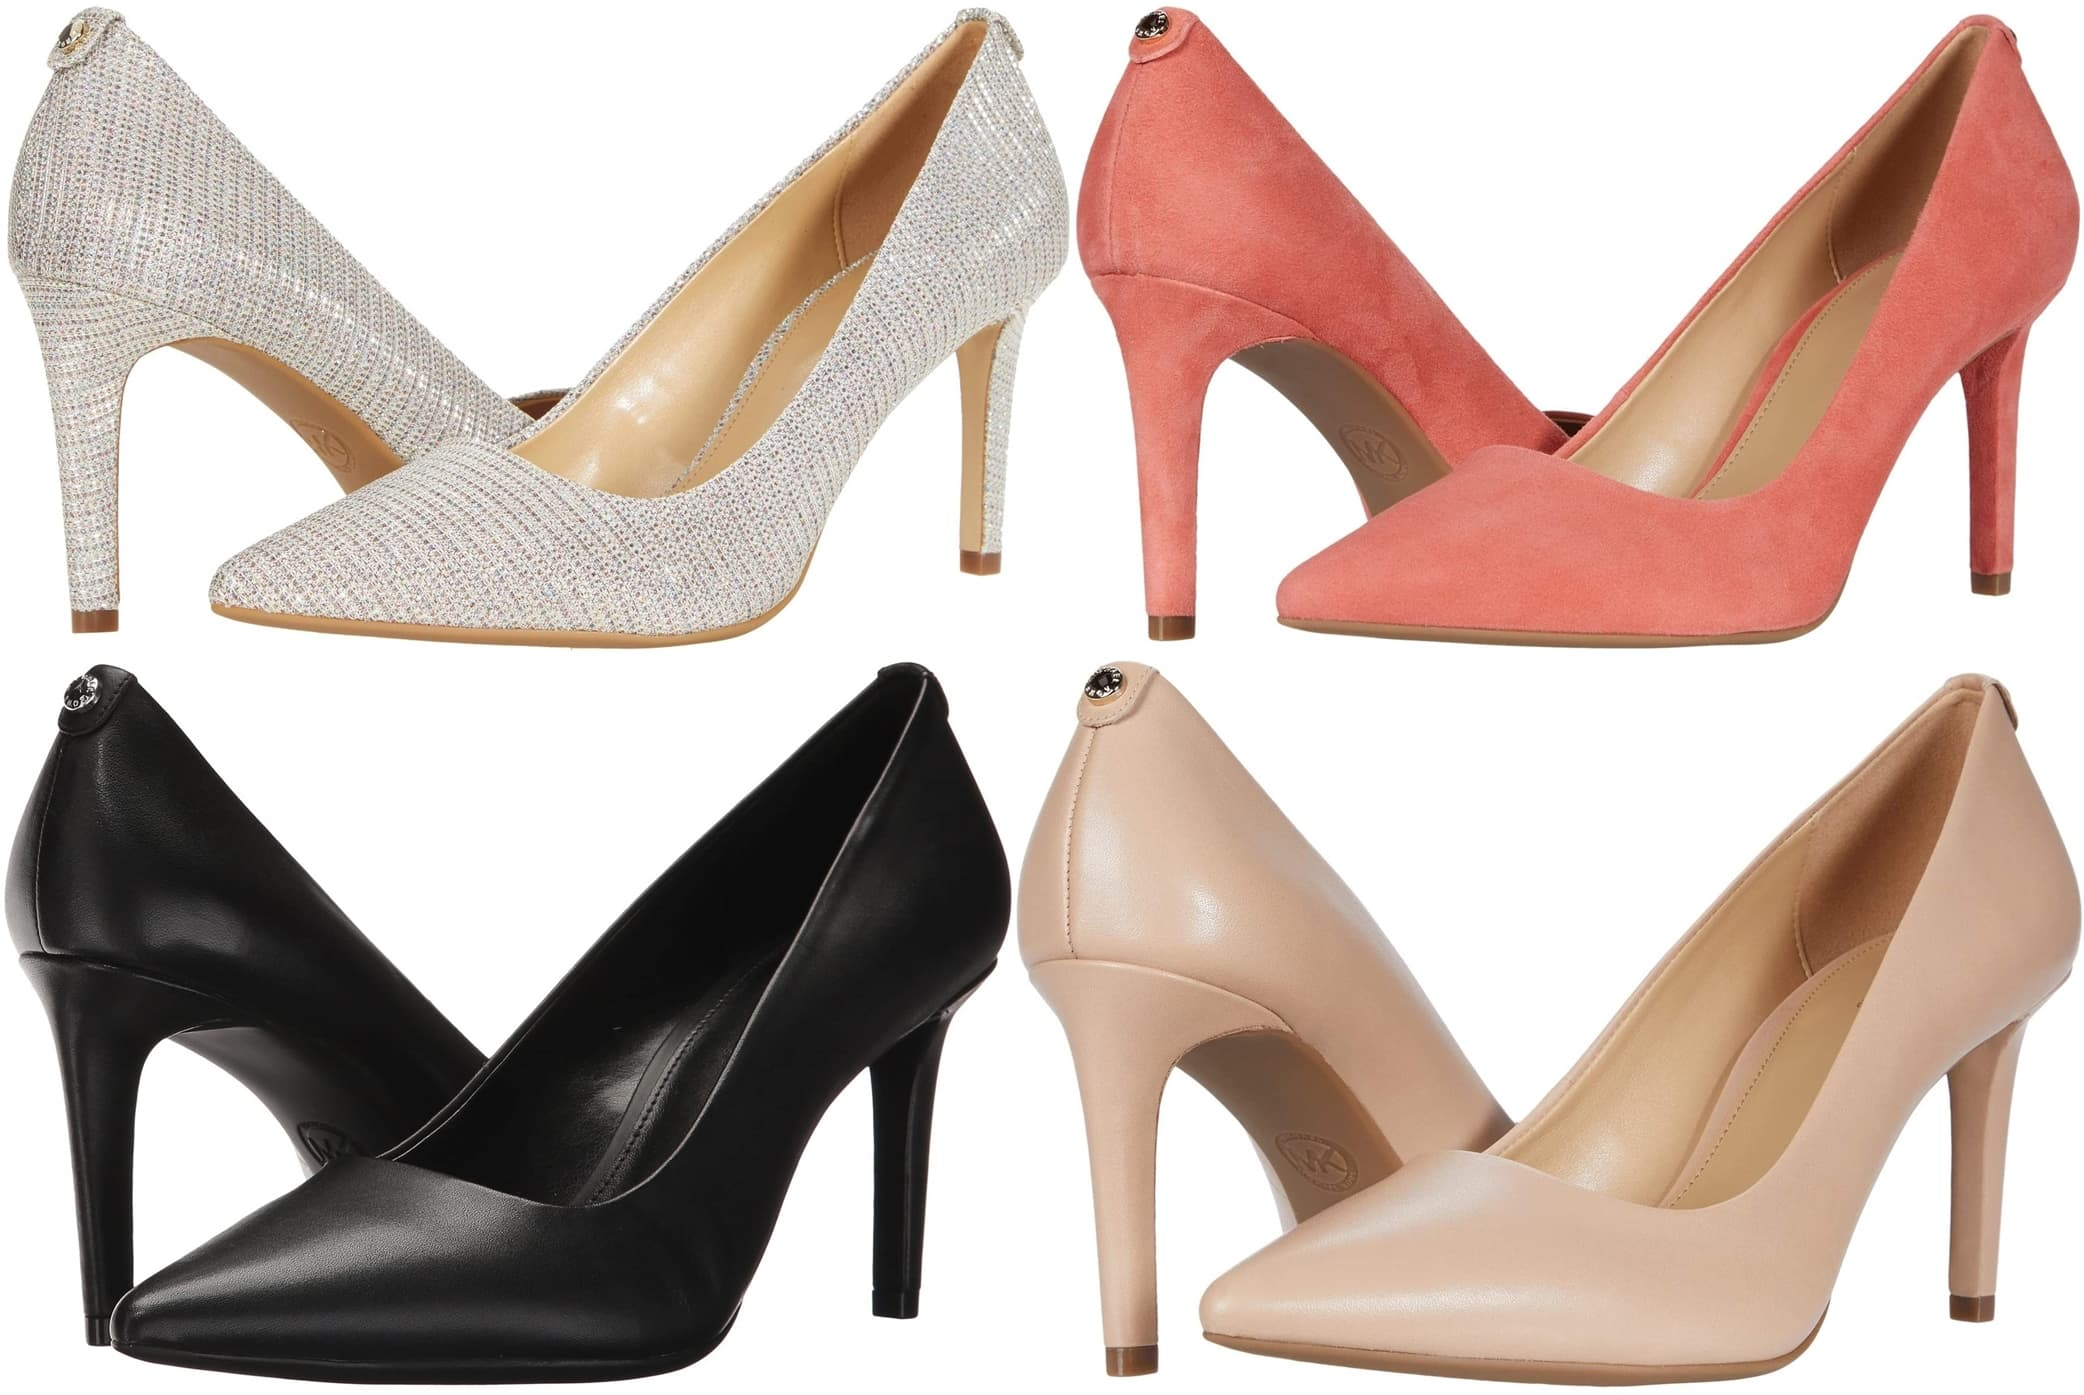 Timeless styling and the enhanced comfort of a flexible, padded footbed make this pointy-toe pump a go-to favorite